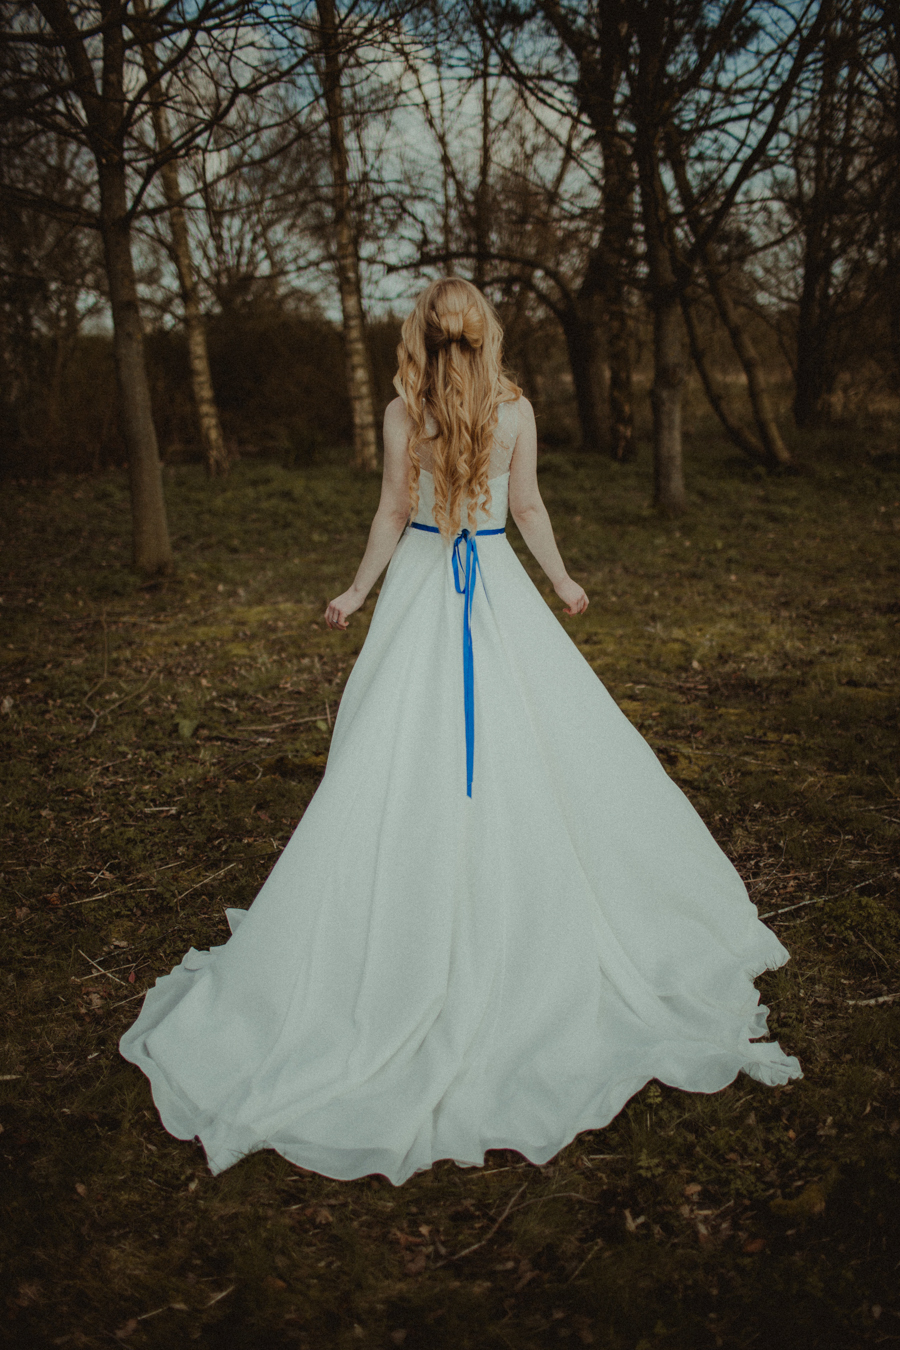 Alice-in-Wonderland-styled-shoot-63